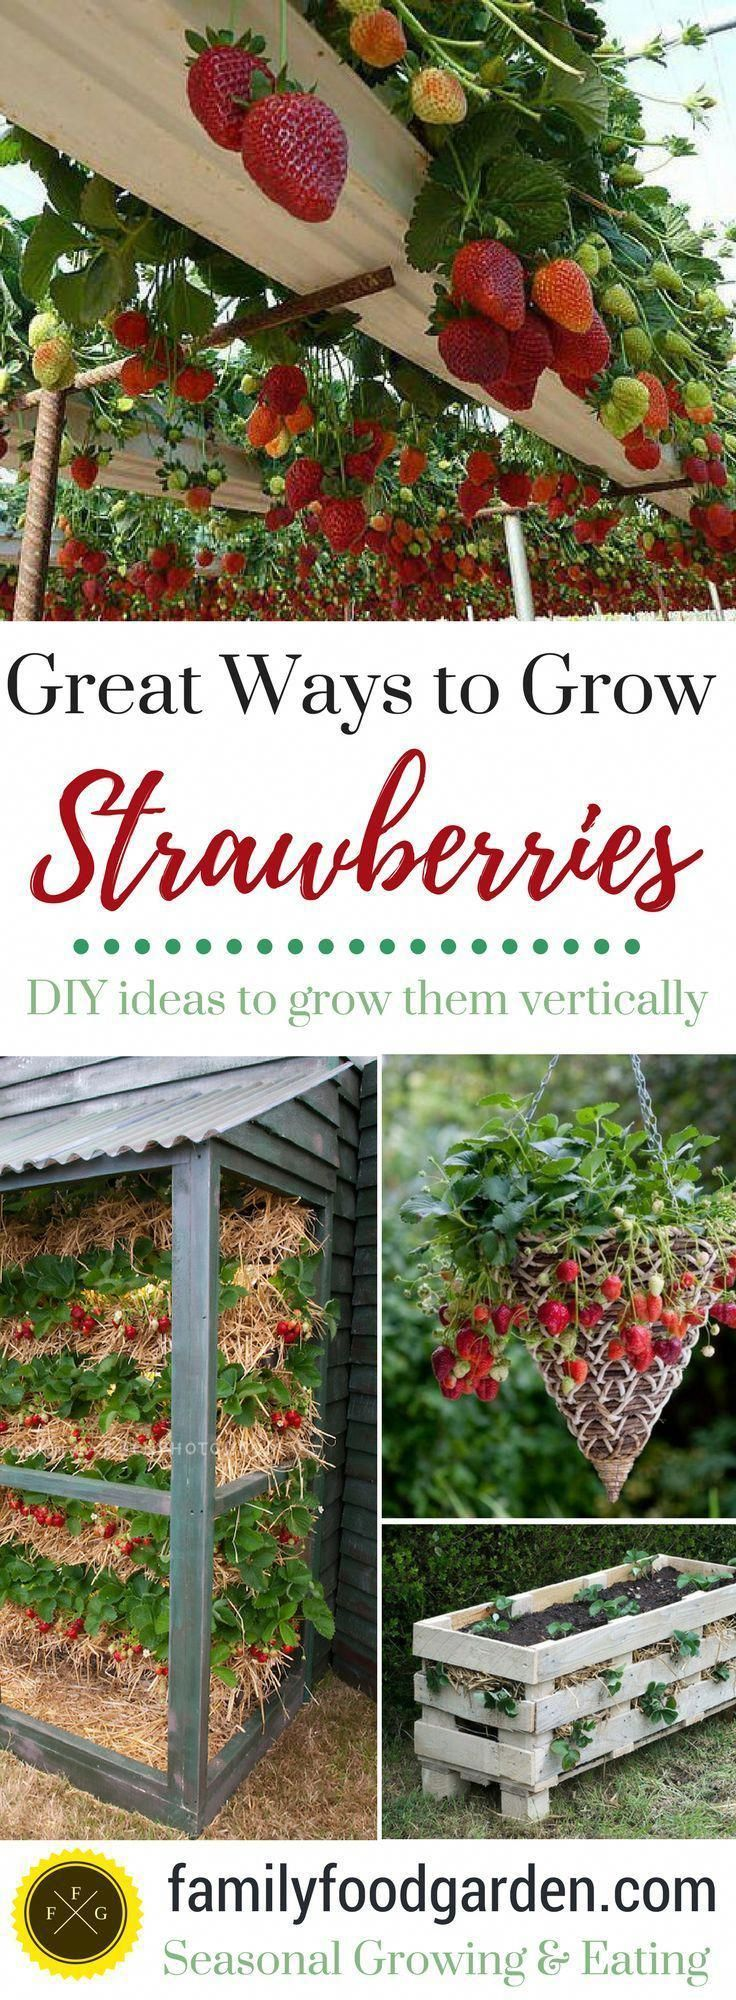 Best Ways to Grow Strawberries in Containers #howtogrowplants